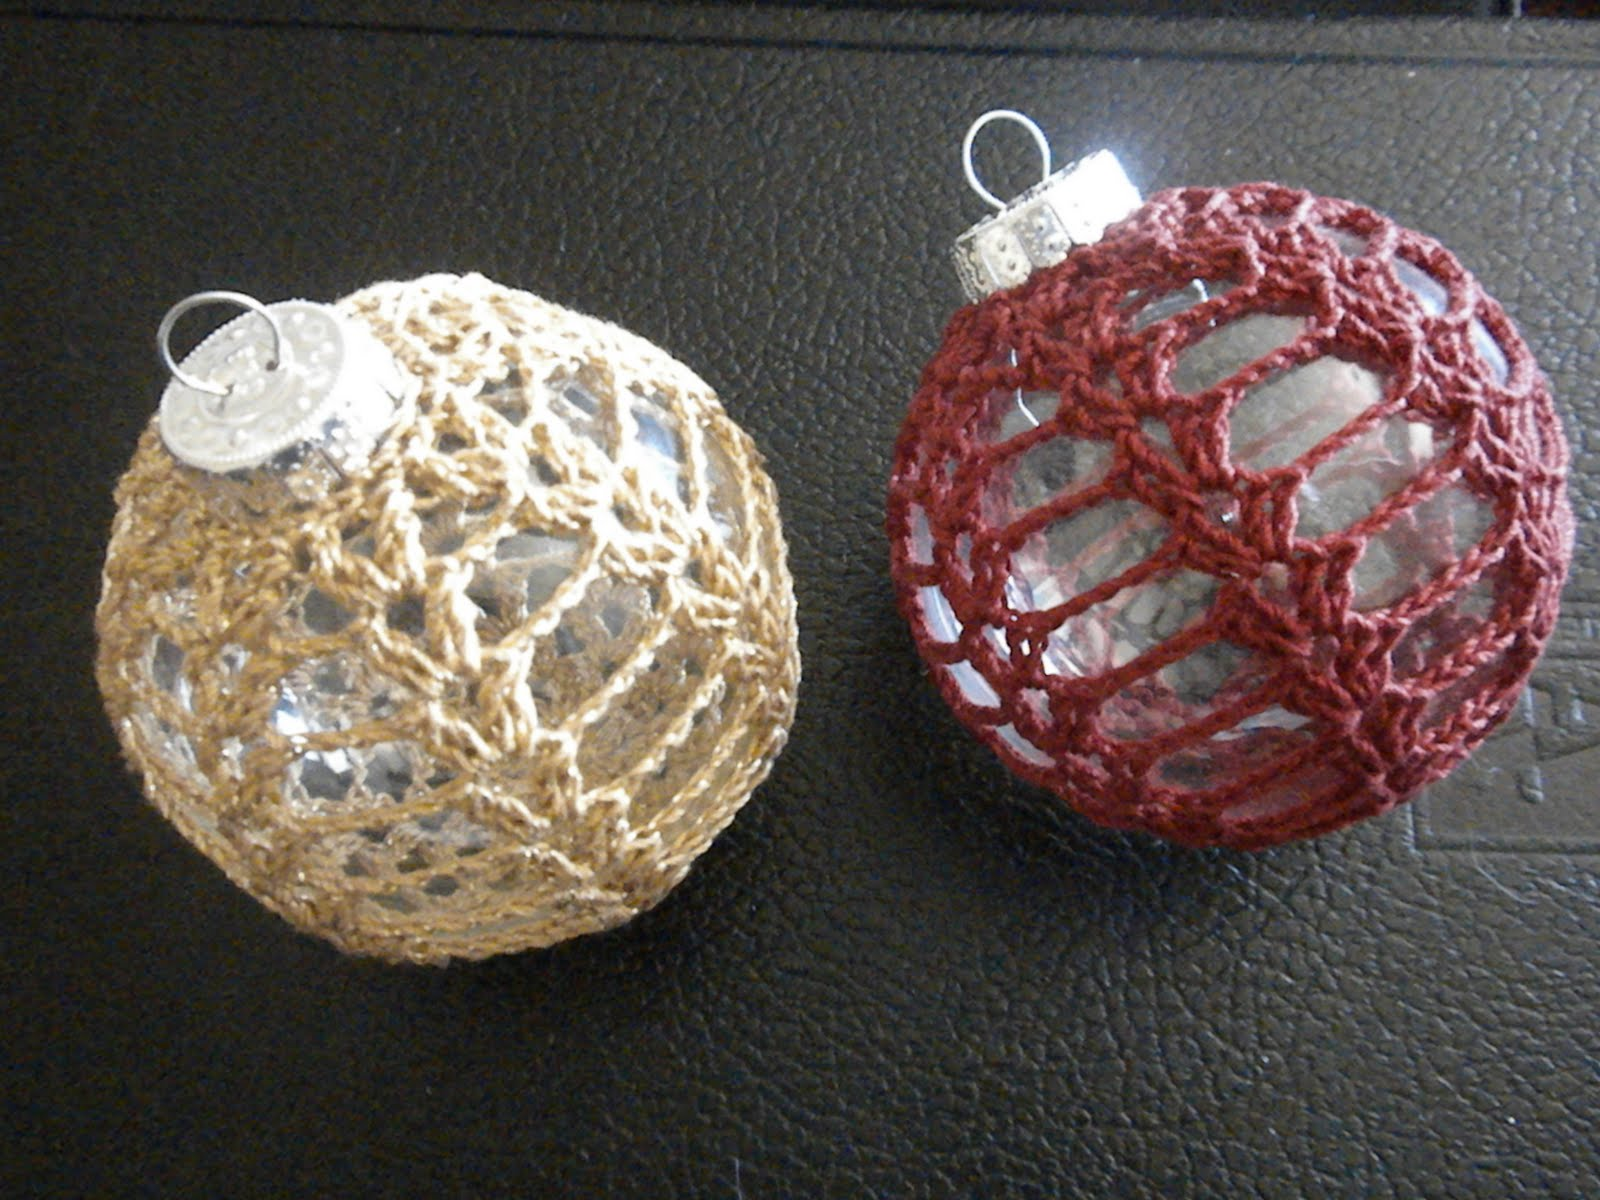 Free Crochet Patterns For Christmas Ball Covers : Smiles: Crochet Christmas Ornament